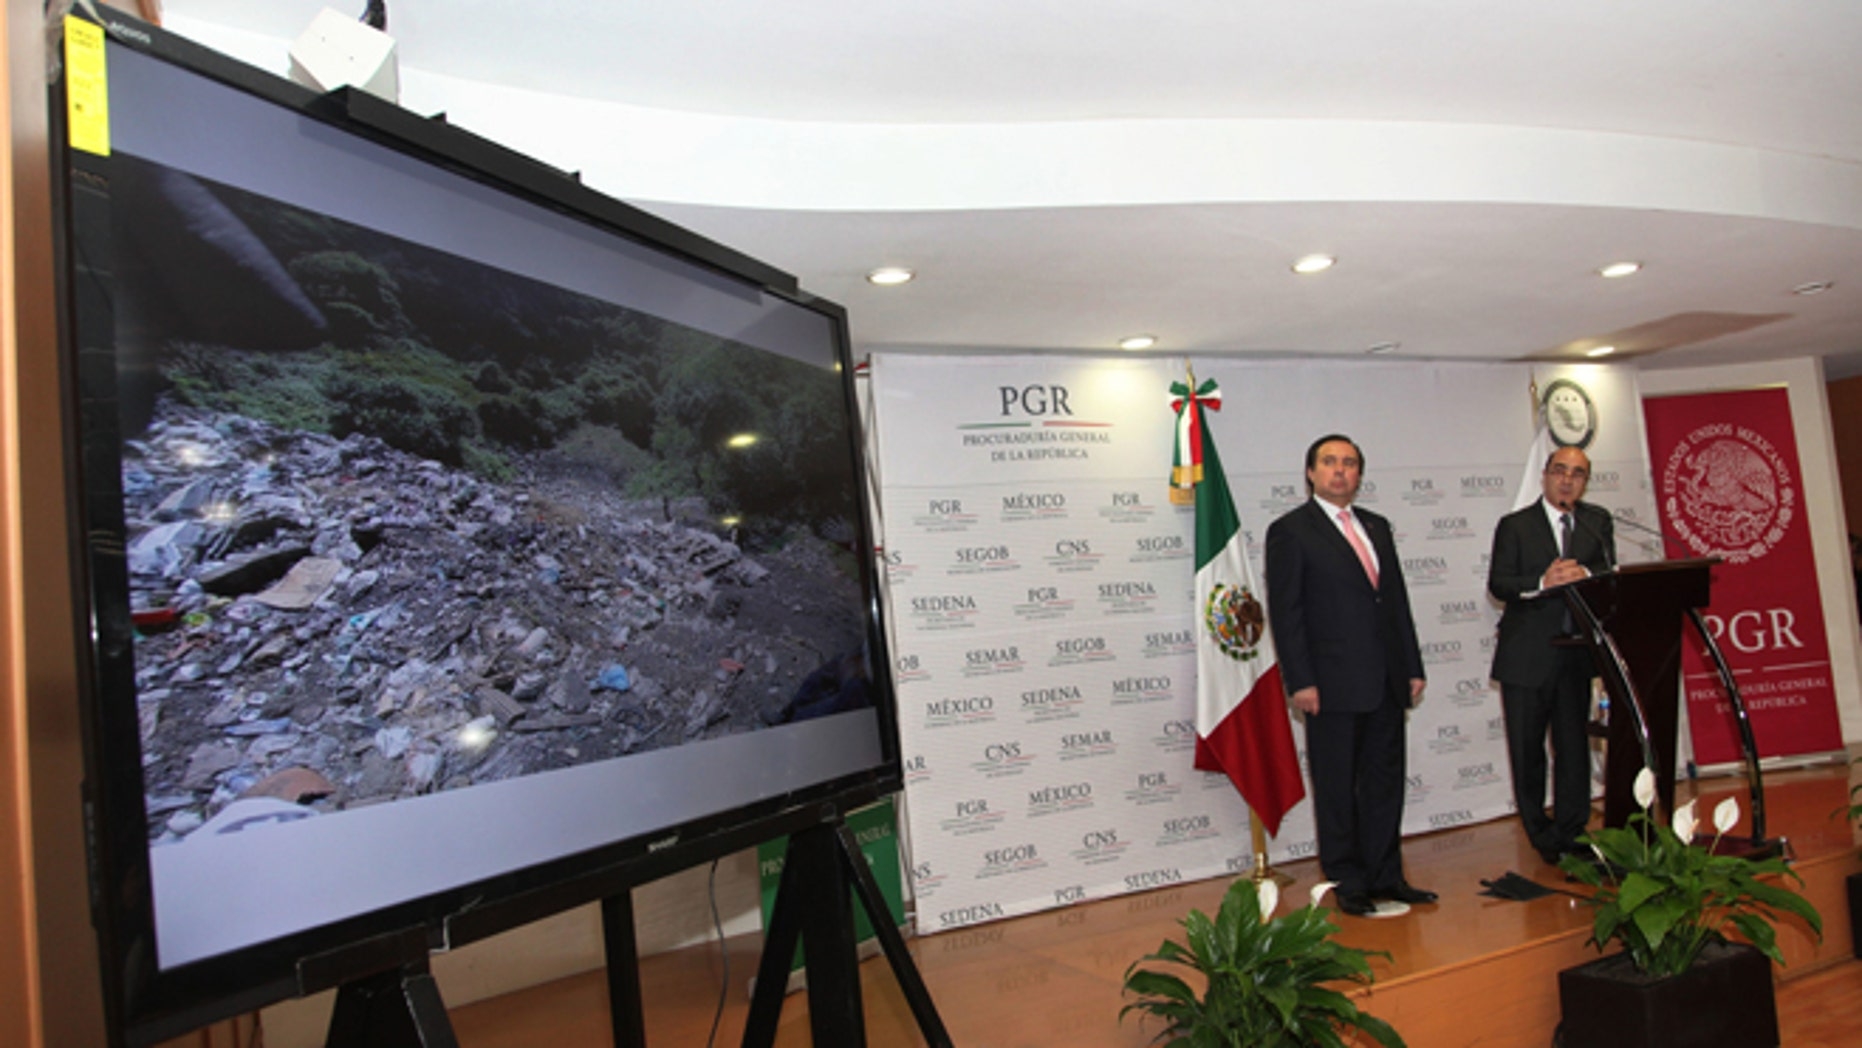 FILE - In this Dec. 7, 2014, file photo, Mexico's Attorney General, Jesus Murillo Karam, right, flanked by Tomas Zeron director of Mexico's Criminal Investigation Agency, speaks during a news conference in Mexico City. The Attorney Generalââ¬â¢s Office has announced on Wednesday, Sept. 14, 2016, the resignation of Tomas Zeron, whose dismissal had been demanded by the families of 43 college students who disappeared two years ago. (AP Photo/Marco Ugarte, File)